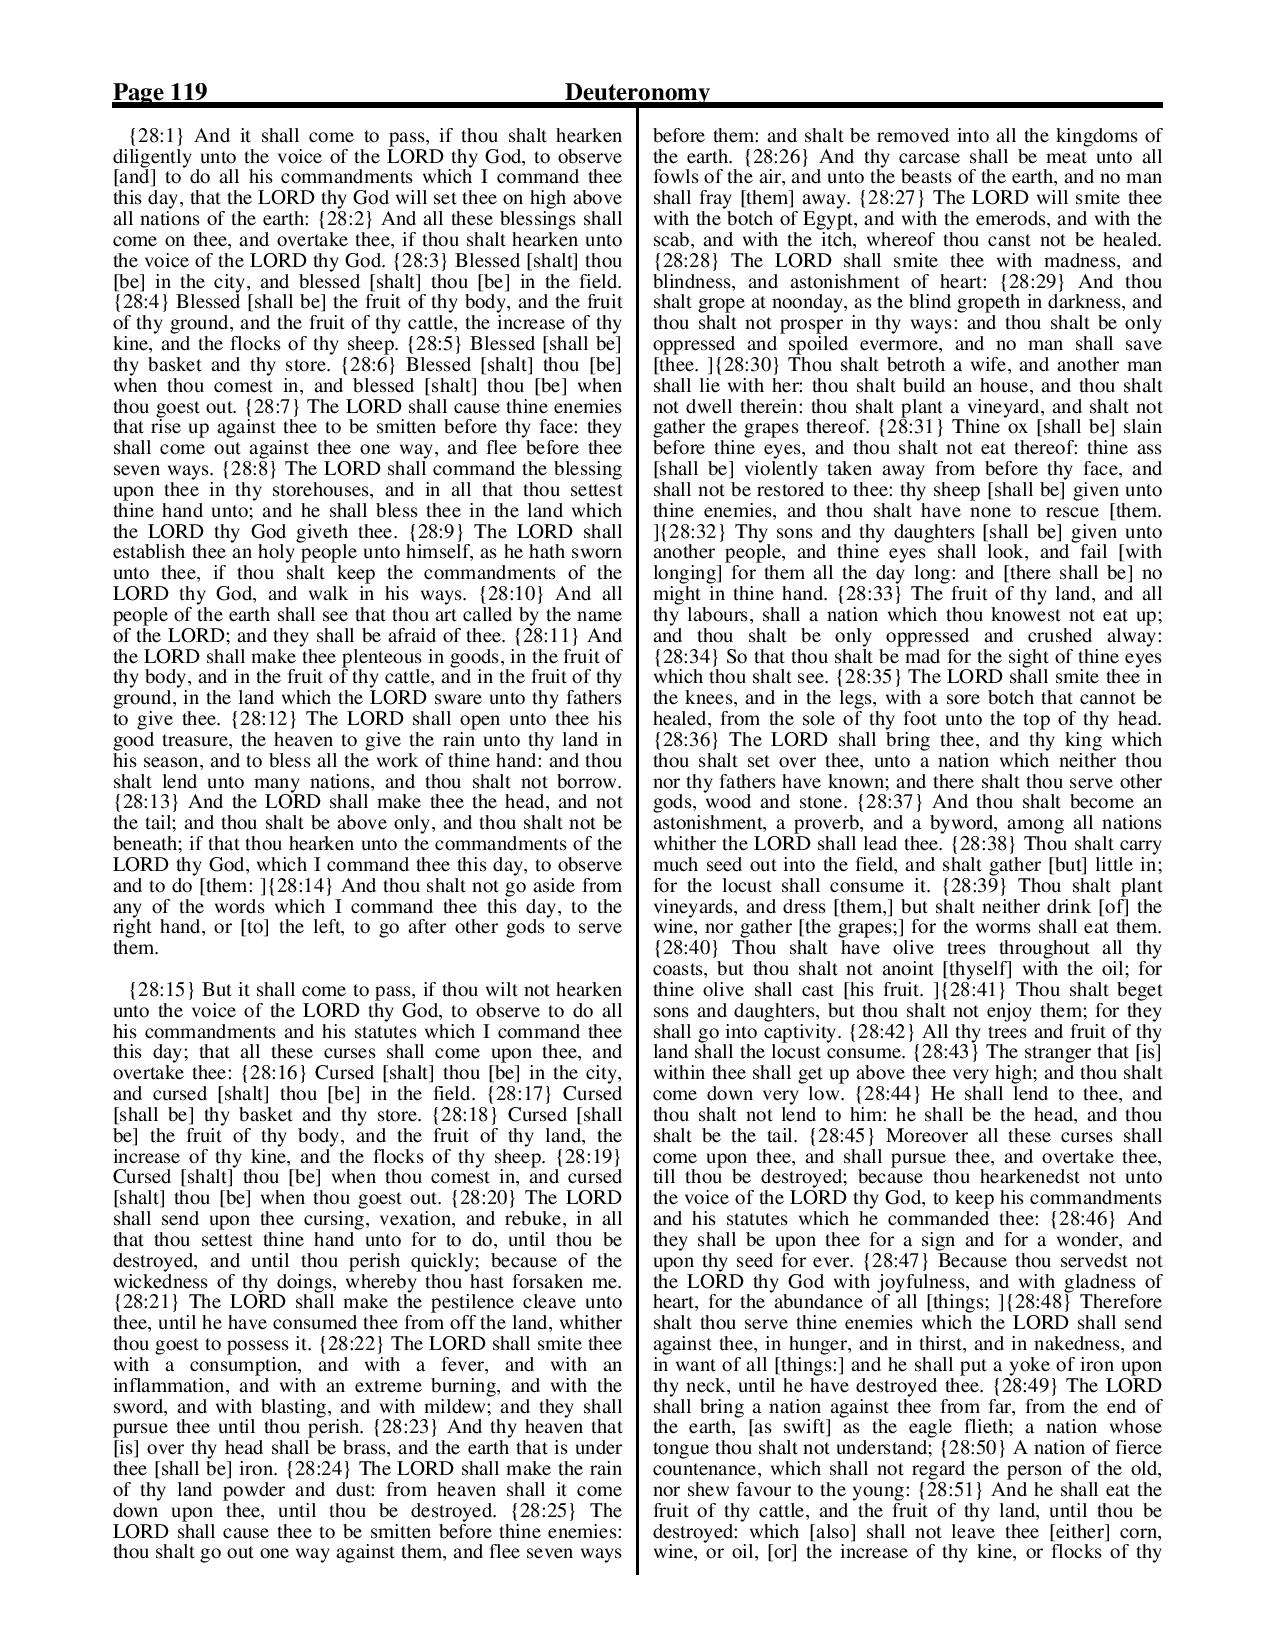 King-James-Bible-KJV-Bible-PDF-page-140